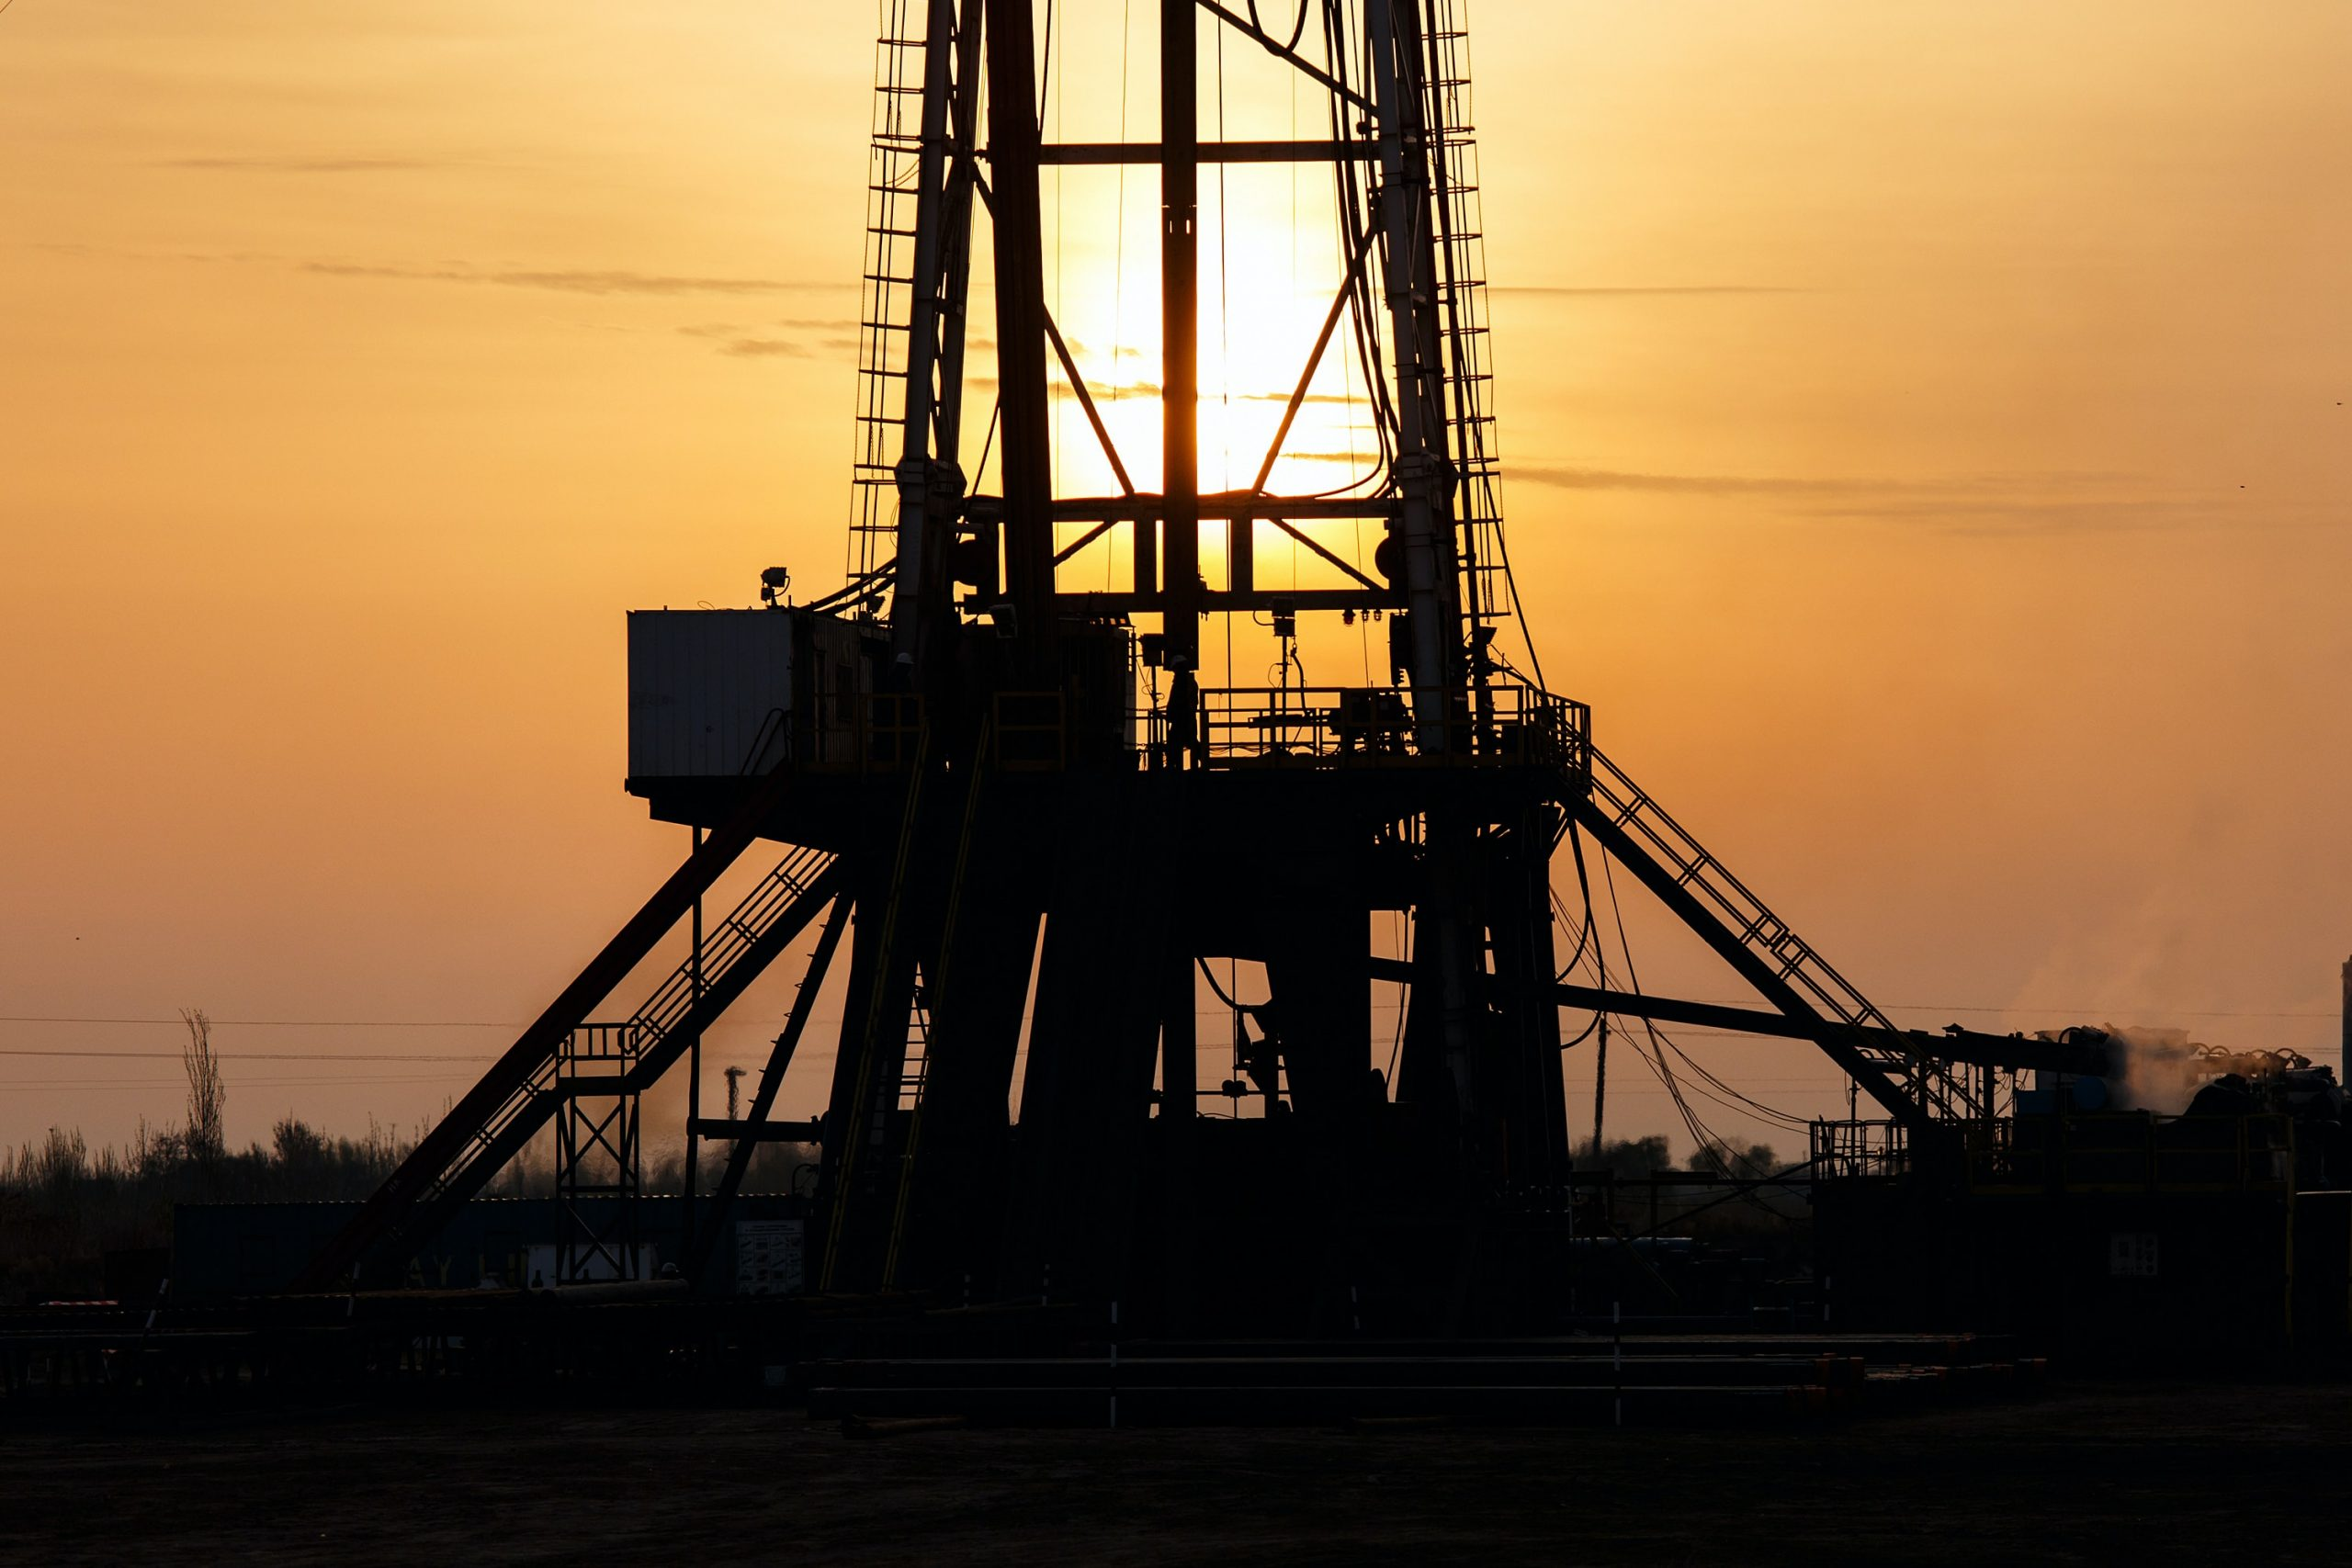 Finding a way to repurpose oil wells for the clean energy transition. (Image: Unsplash)